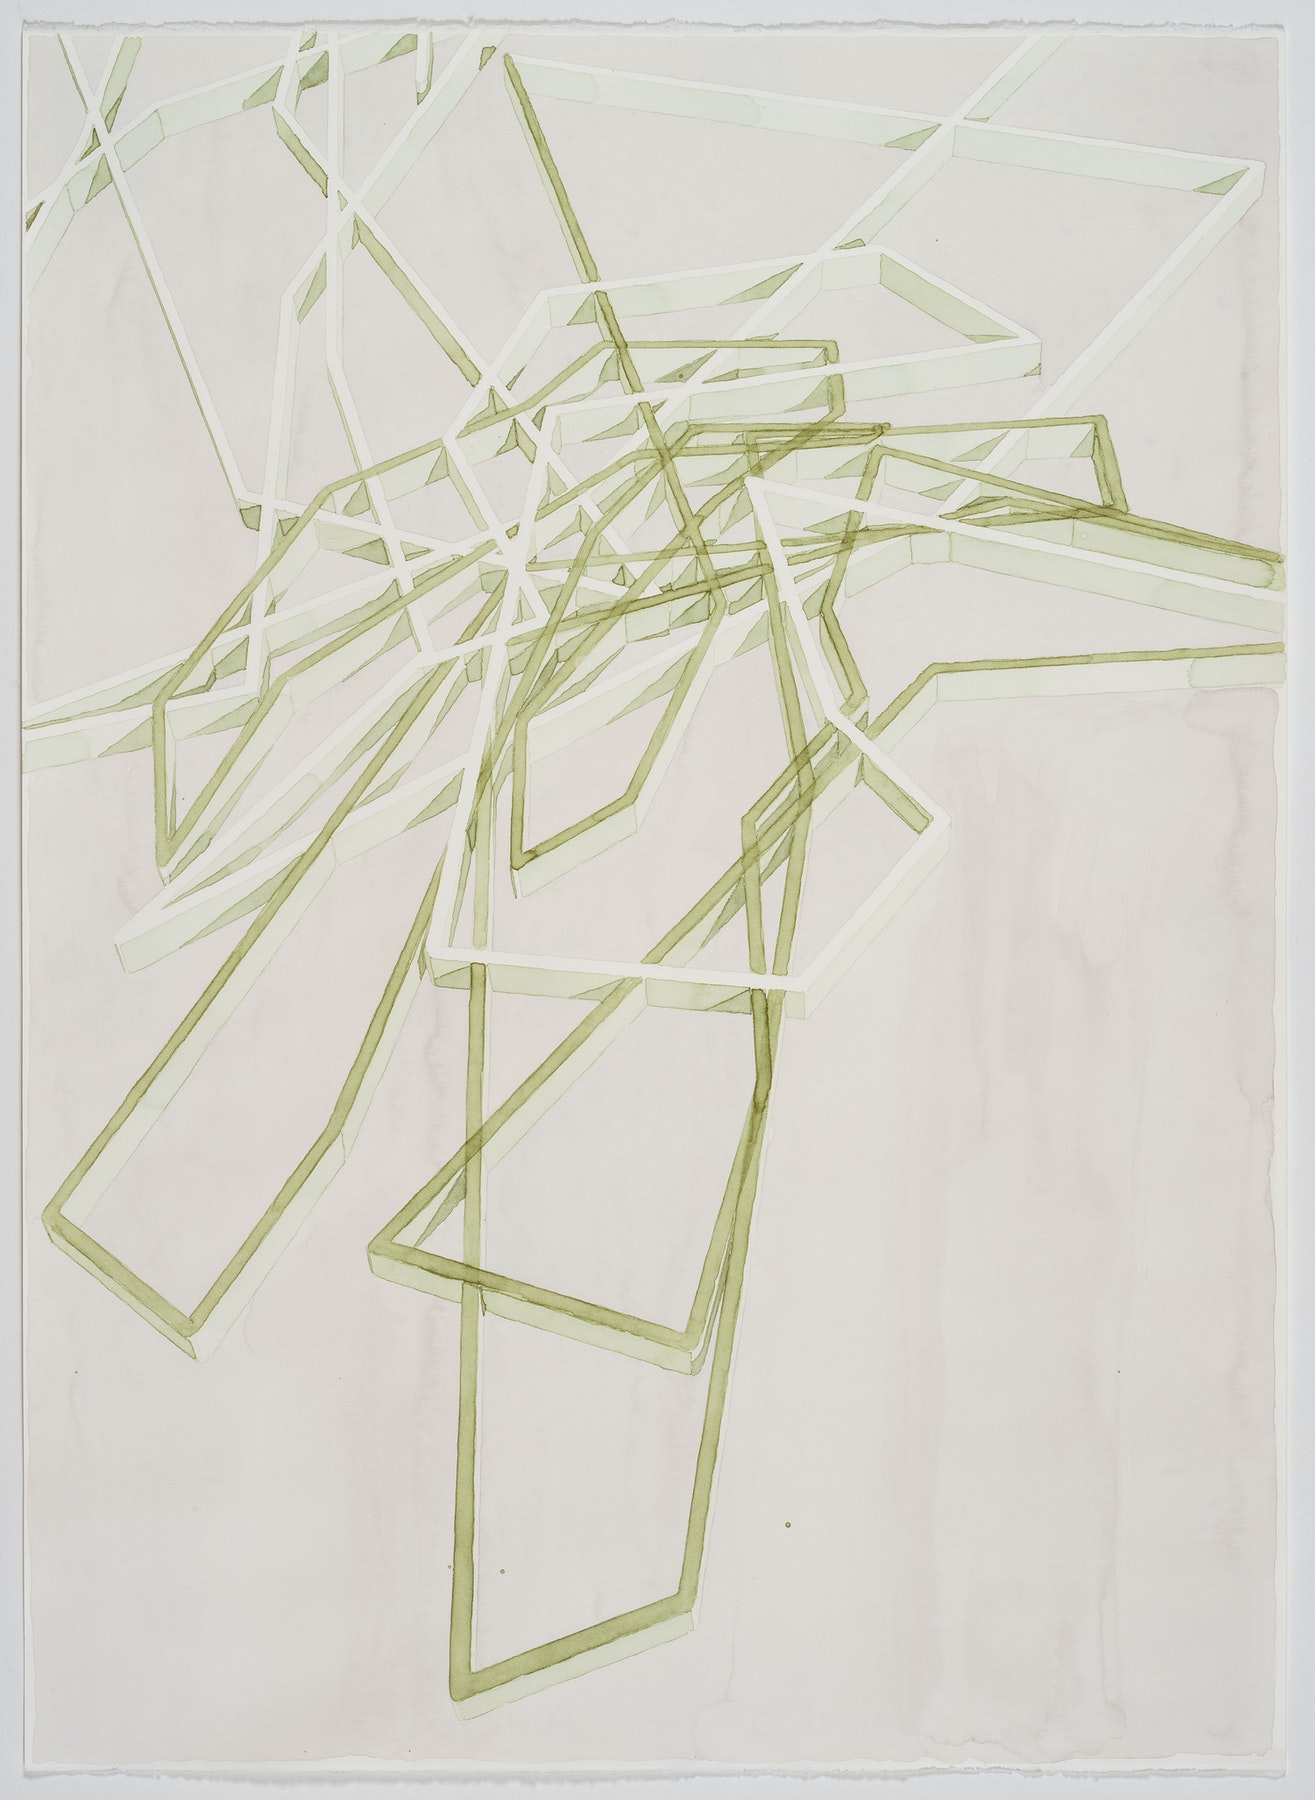 Soy Drawing 9 (organic) by Rob Carter